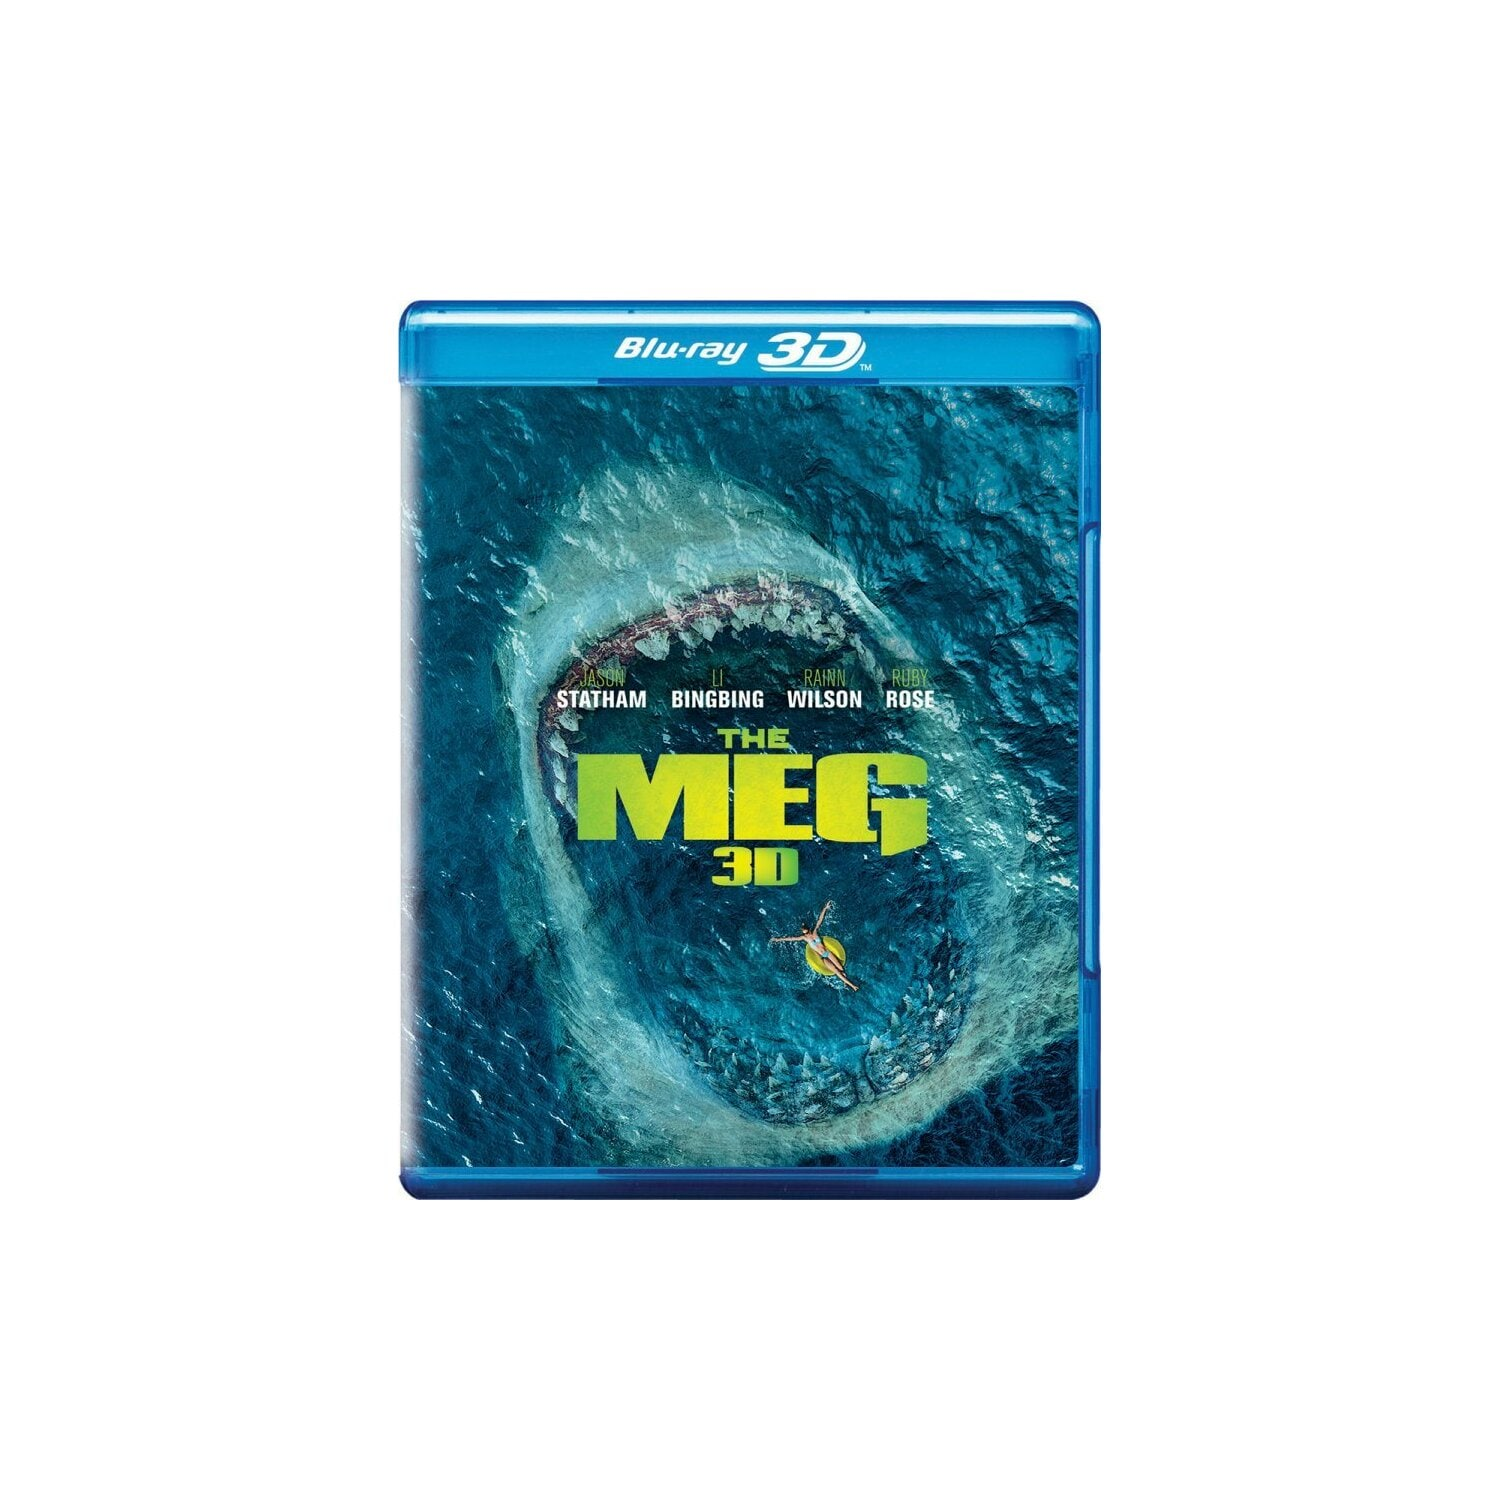 The Meg 3D (2BD)